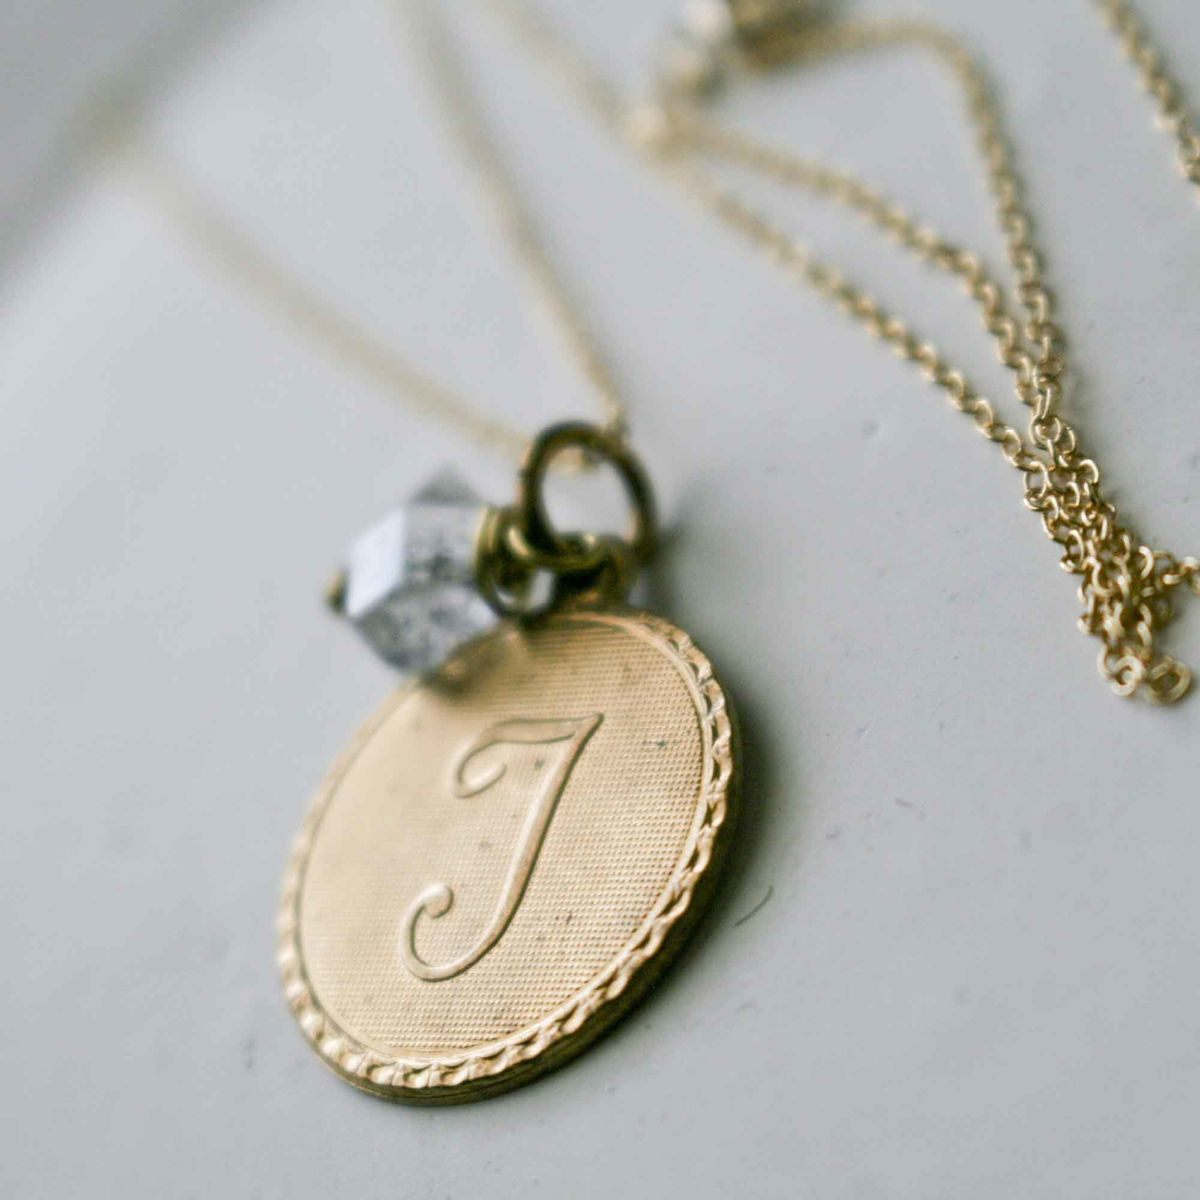 Uppercase Cursive Initial Monogram Letter Round Disc Charm Necklace Regarding Most Recently Released Letter P Alphabet Locket Element Necklaces (View 24 of 26)